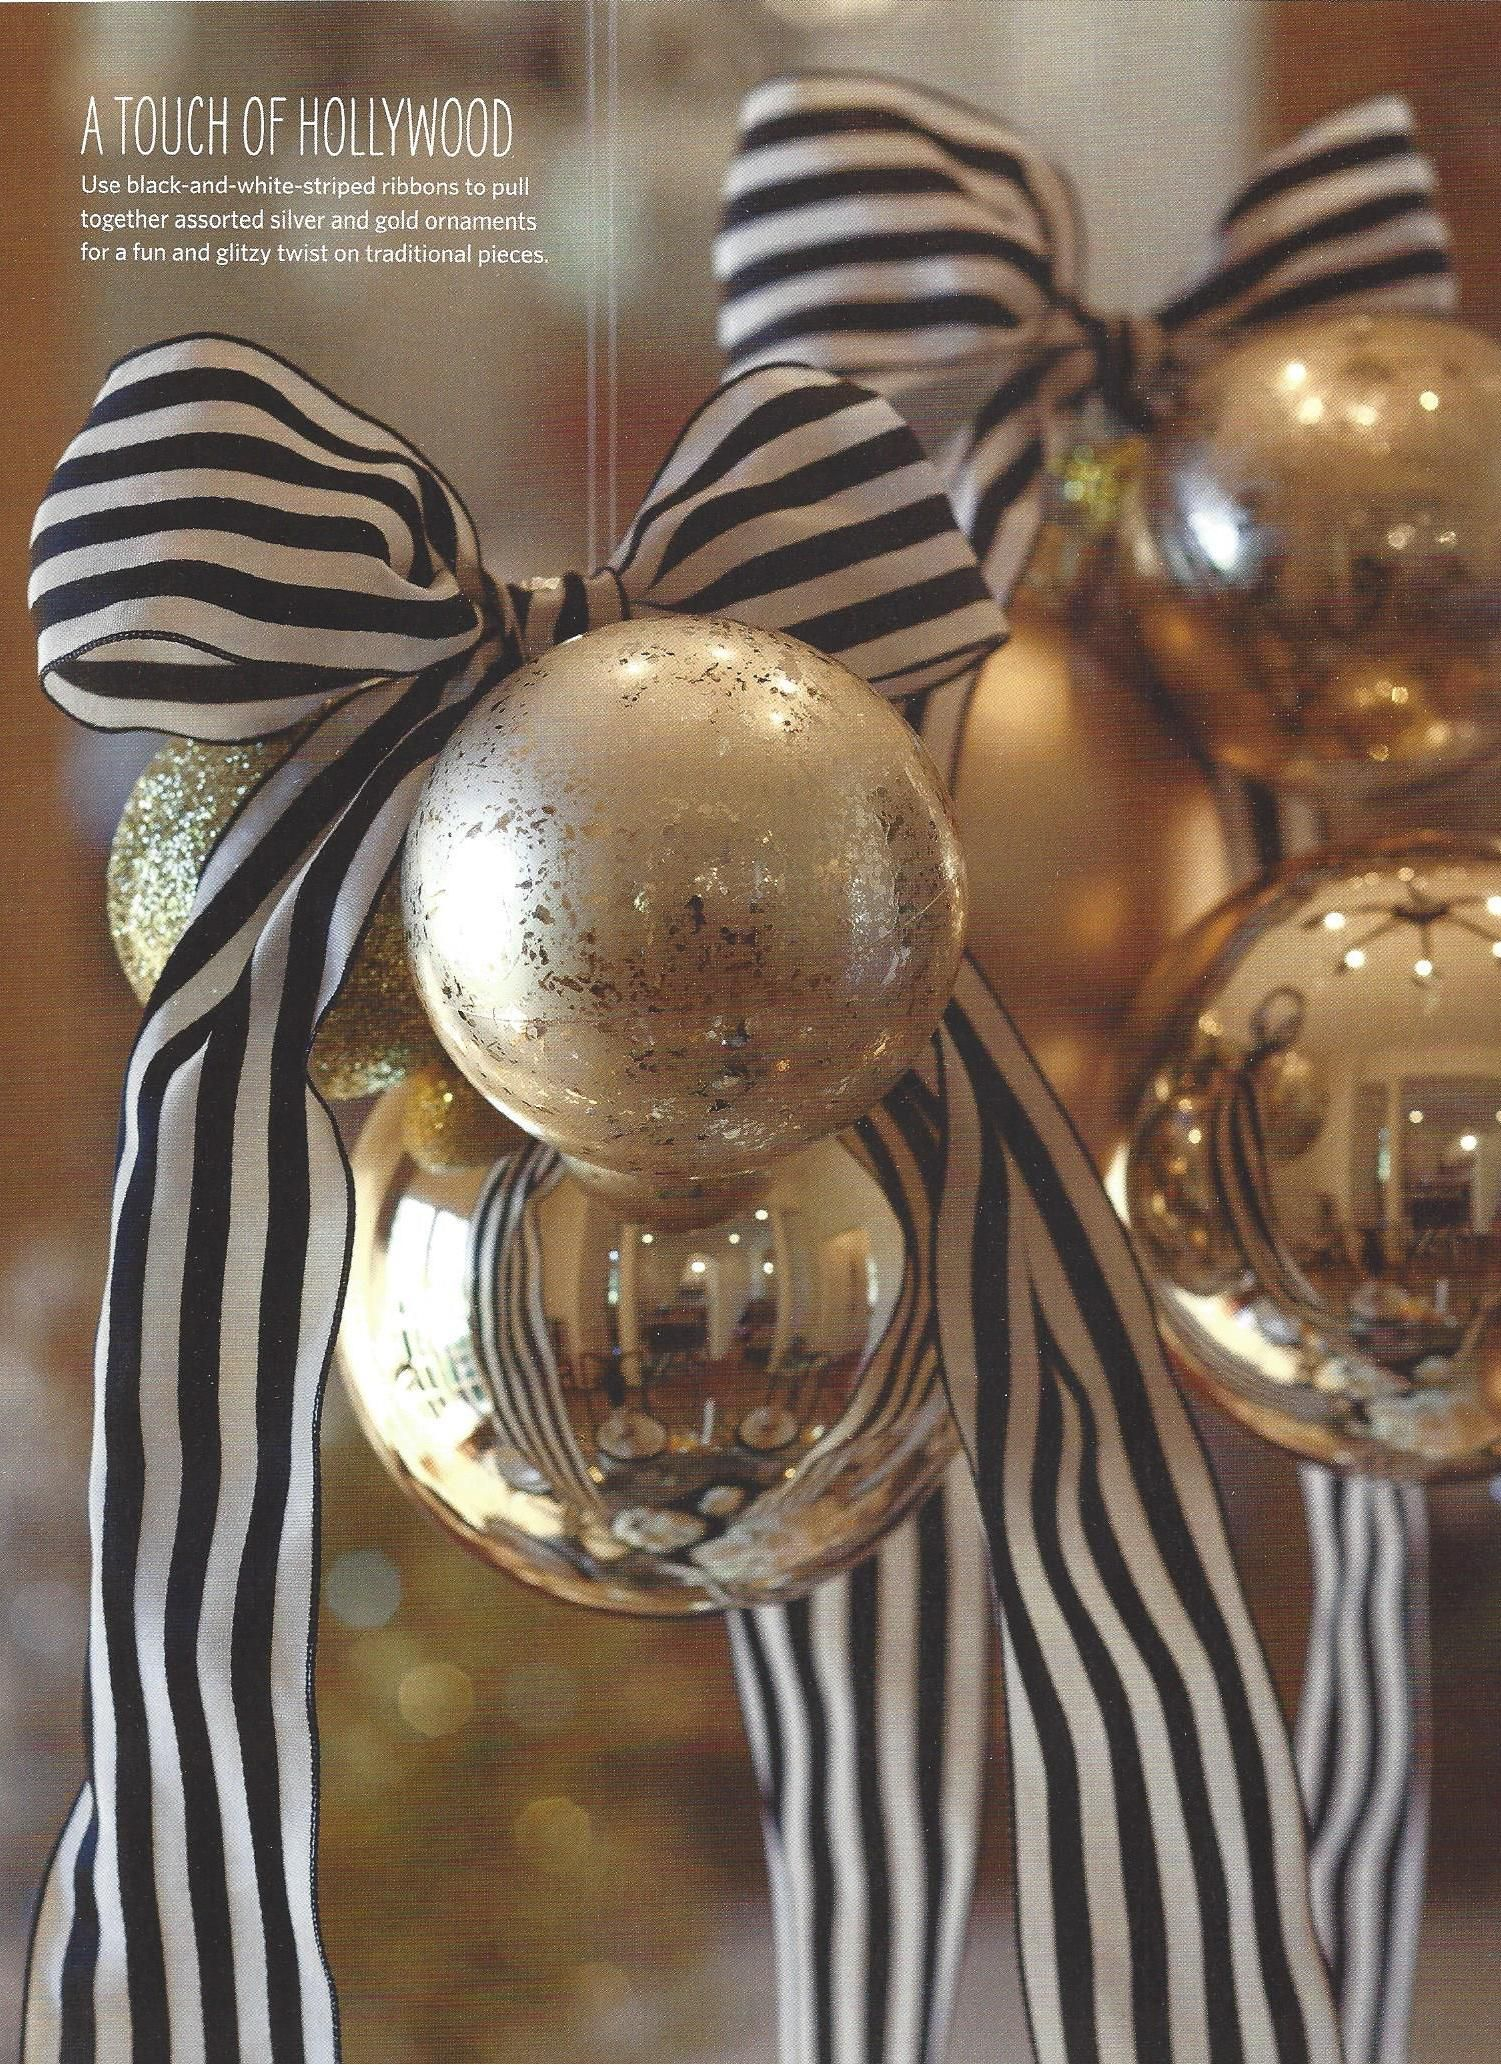 A Mix Of Glossy And Matte Christmas Ornaments In Cer With Chic Black White Striped Ribbon At The Top Más